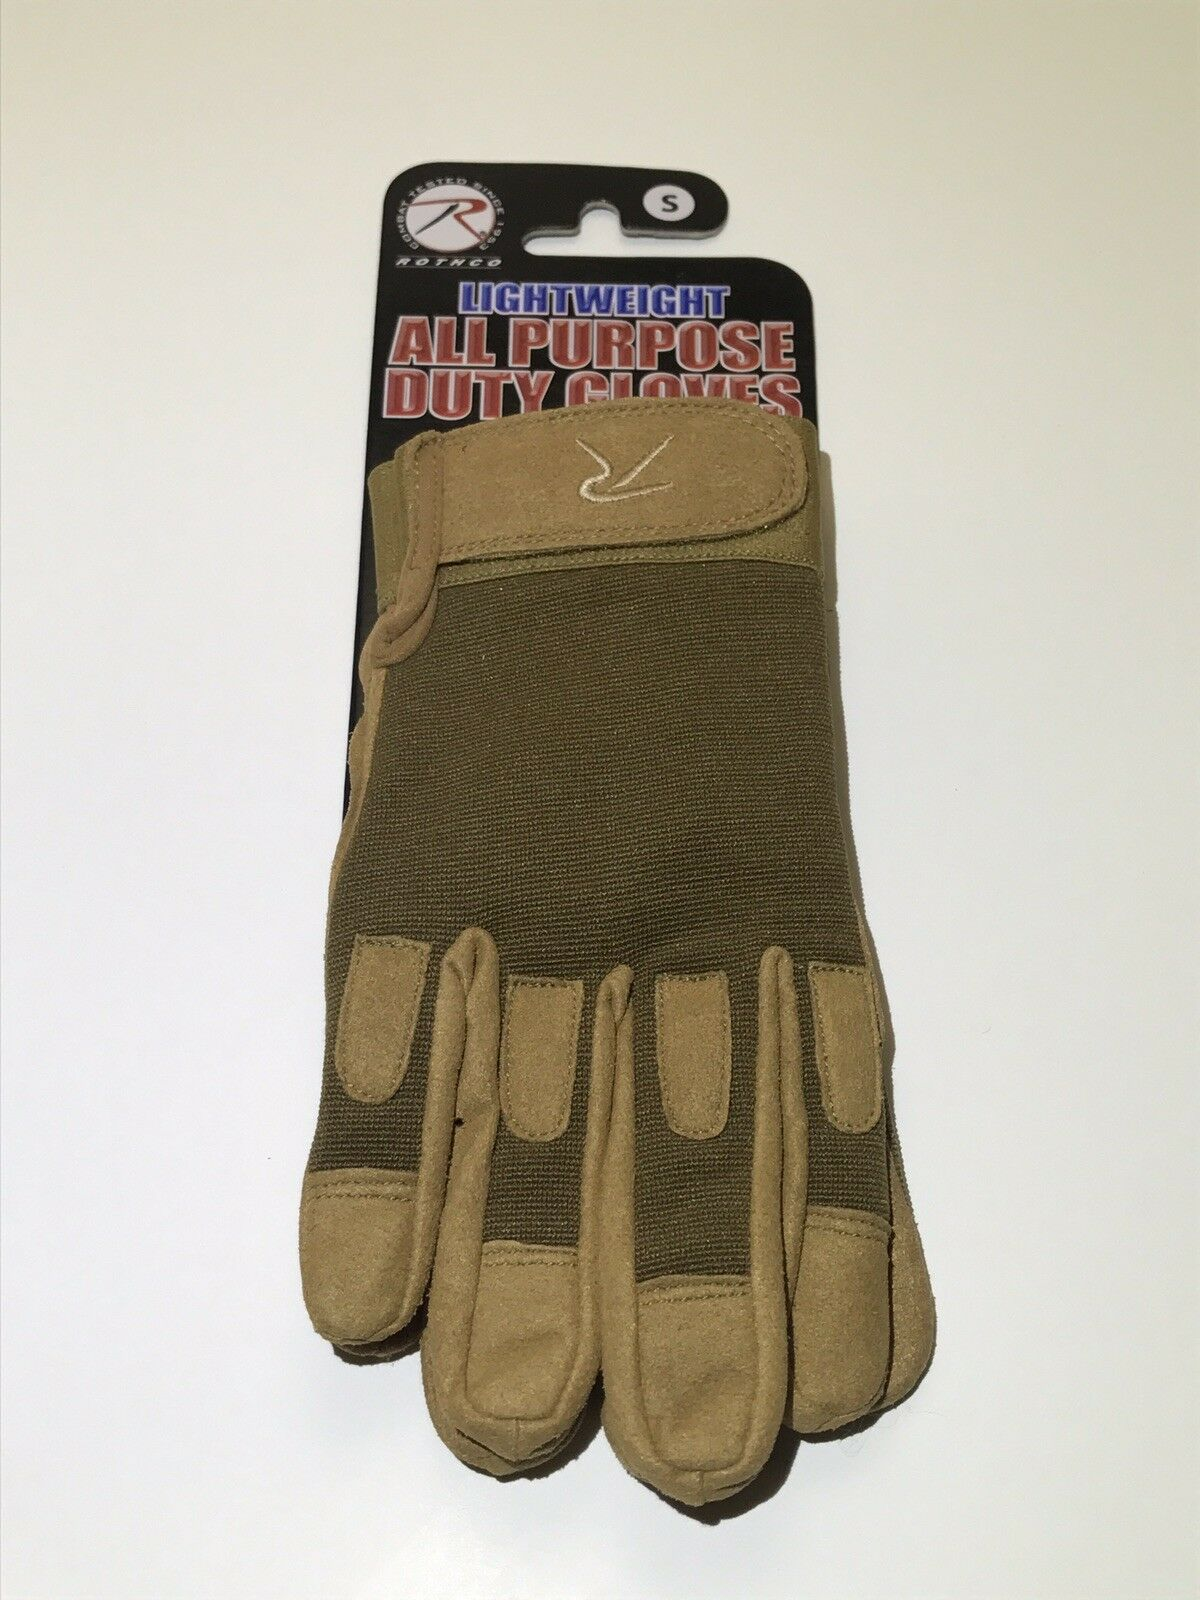 Rothco Lightweight All Purpose Duty Gloves Size Small 613902342118